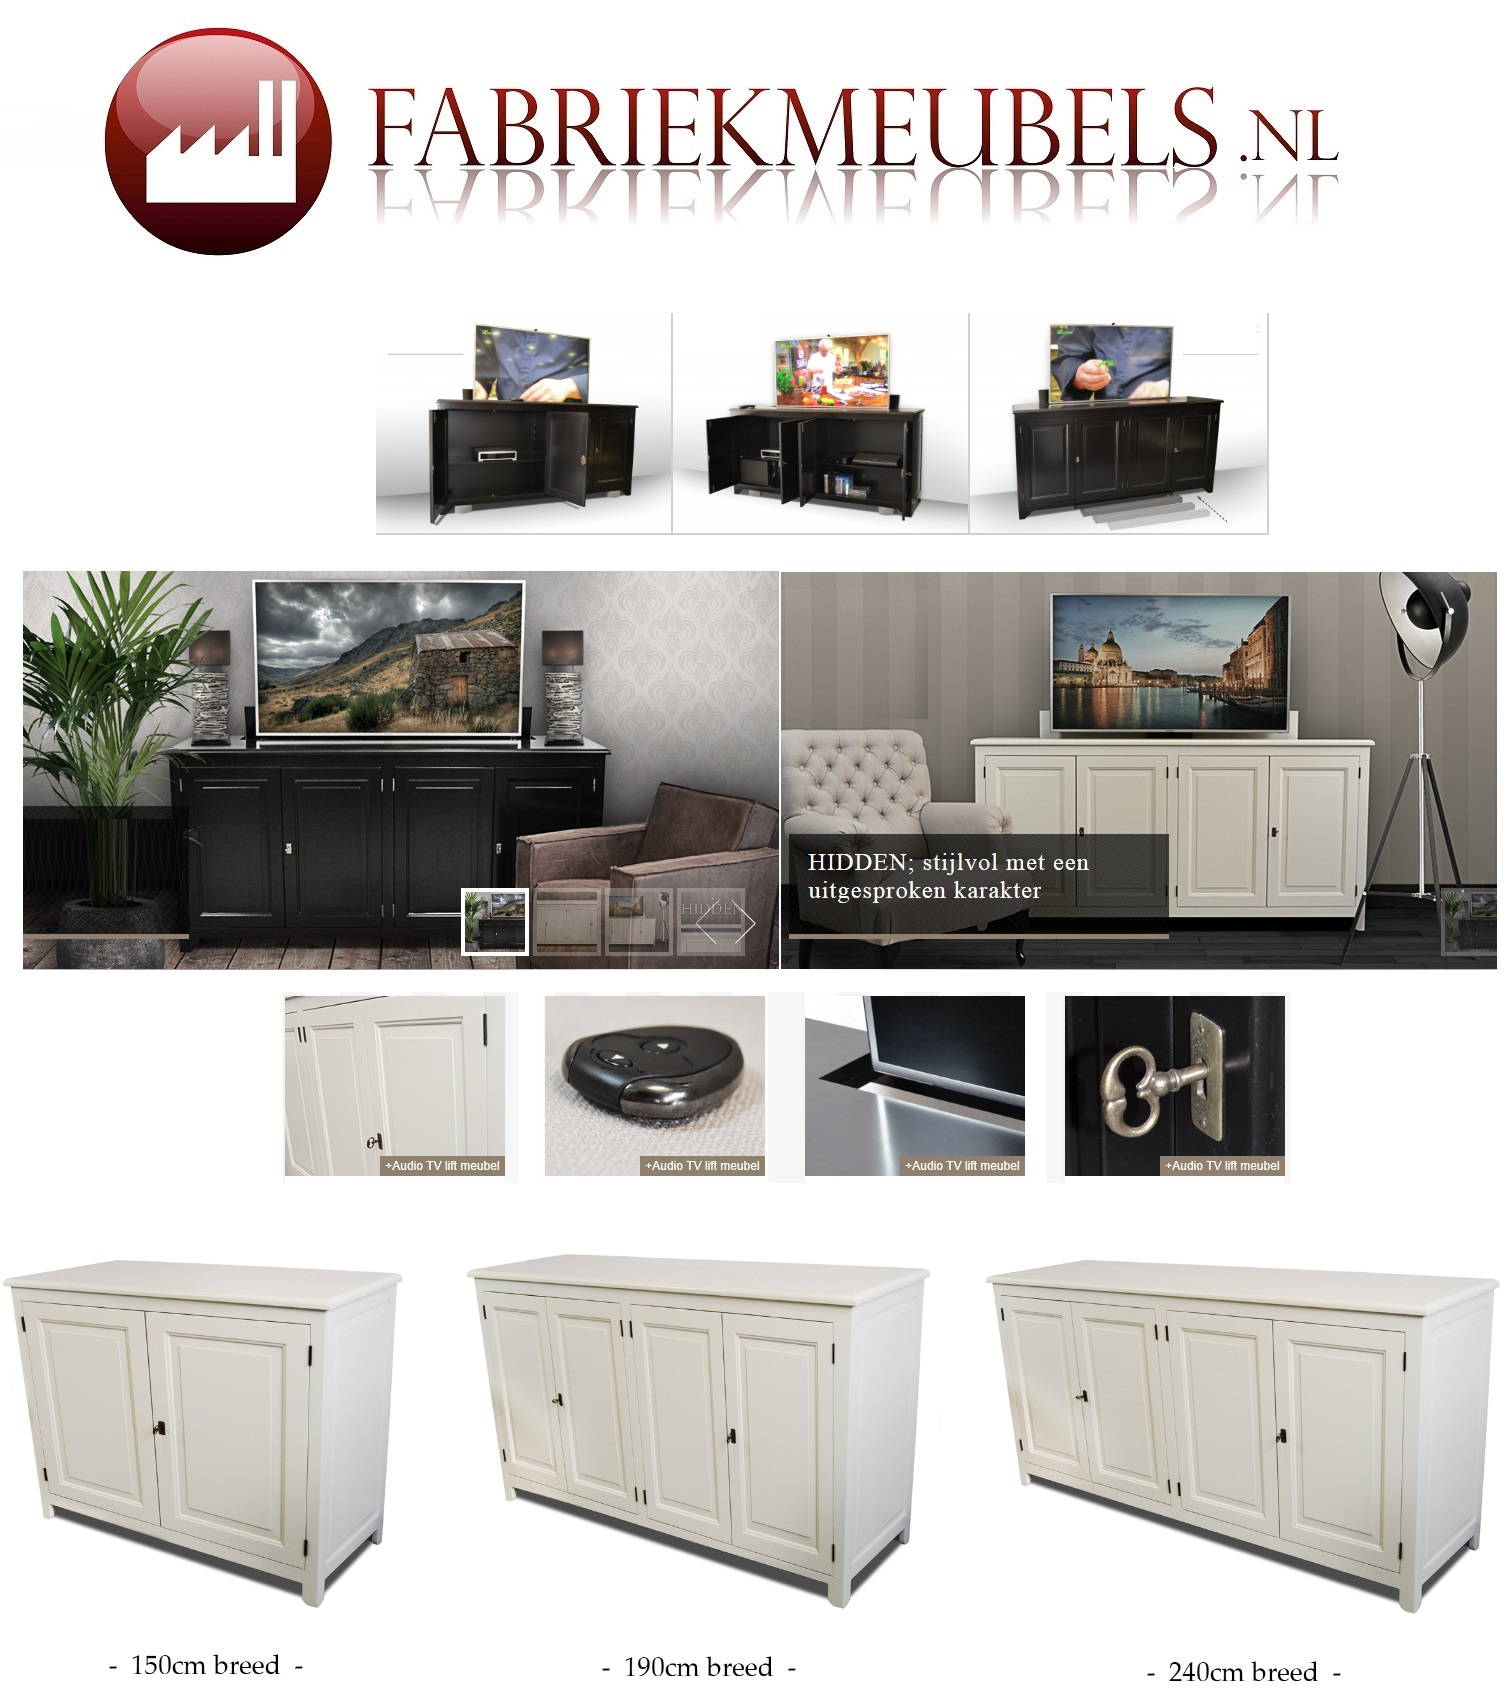 Tv Meubel En Vitrinekast.Tv Meubel Met Lift Hidden Fabriekmeubels Nl